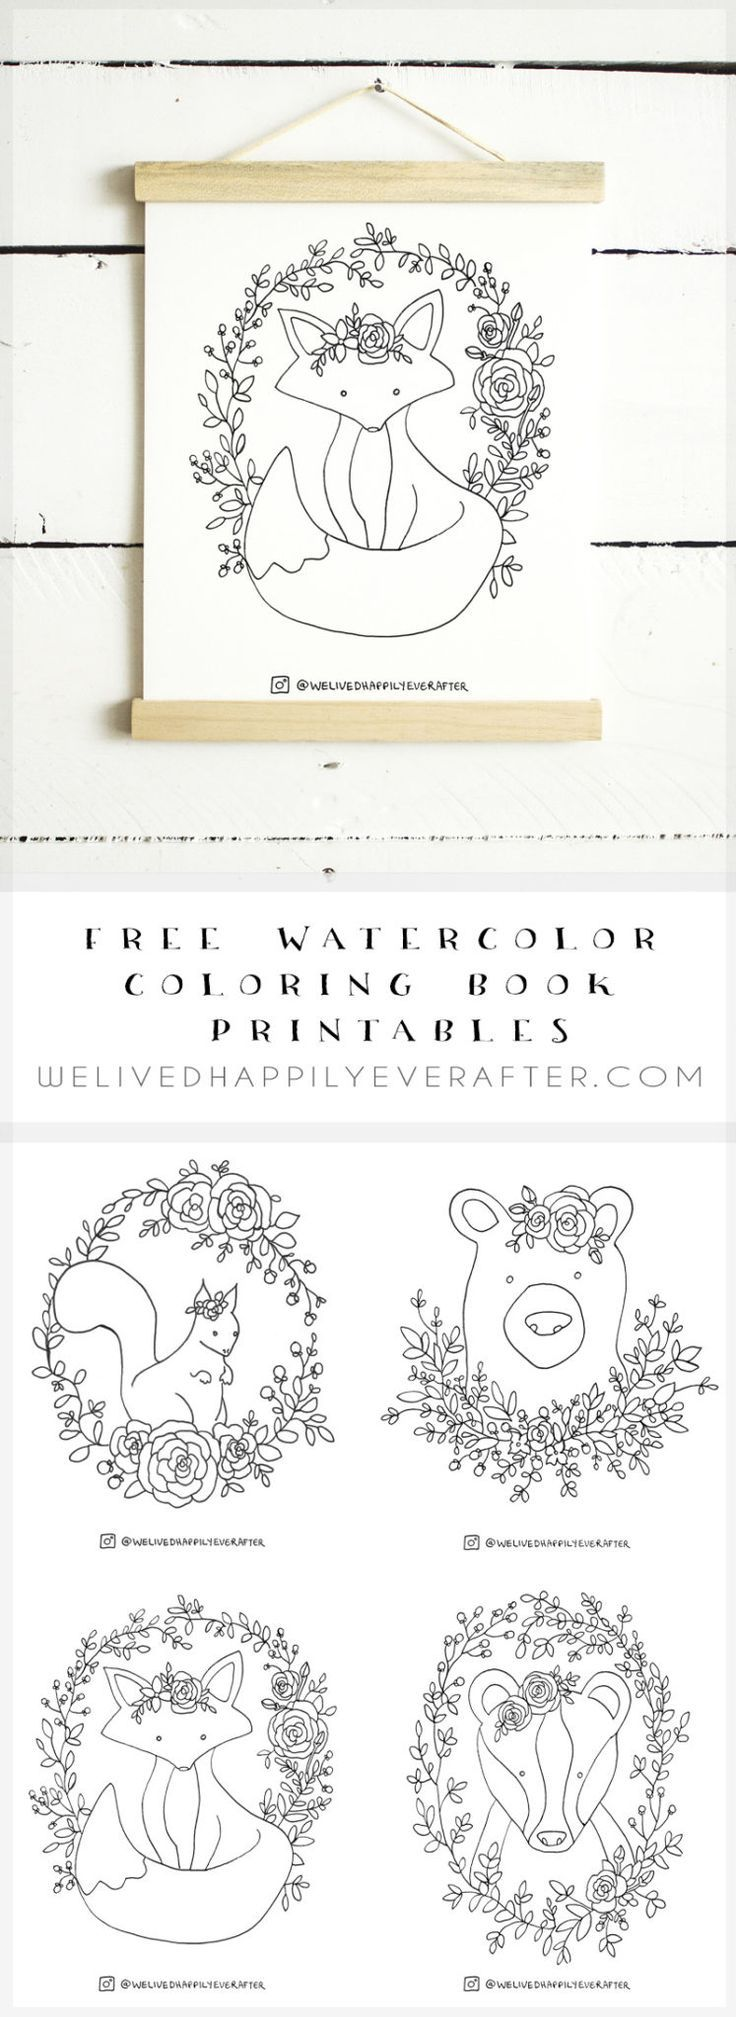 free watercolor adult coloring book printable sheets woodland forest animals part 1 fox bear. Black Bedroom Furniture Sets. Home Design Ideas